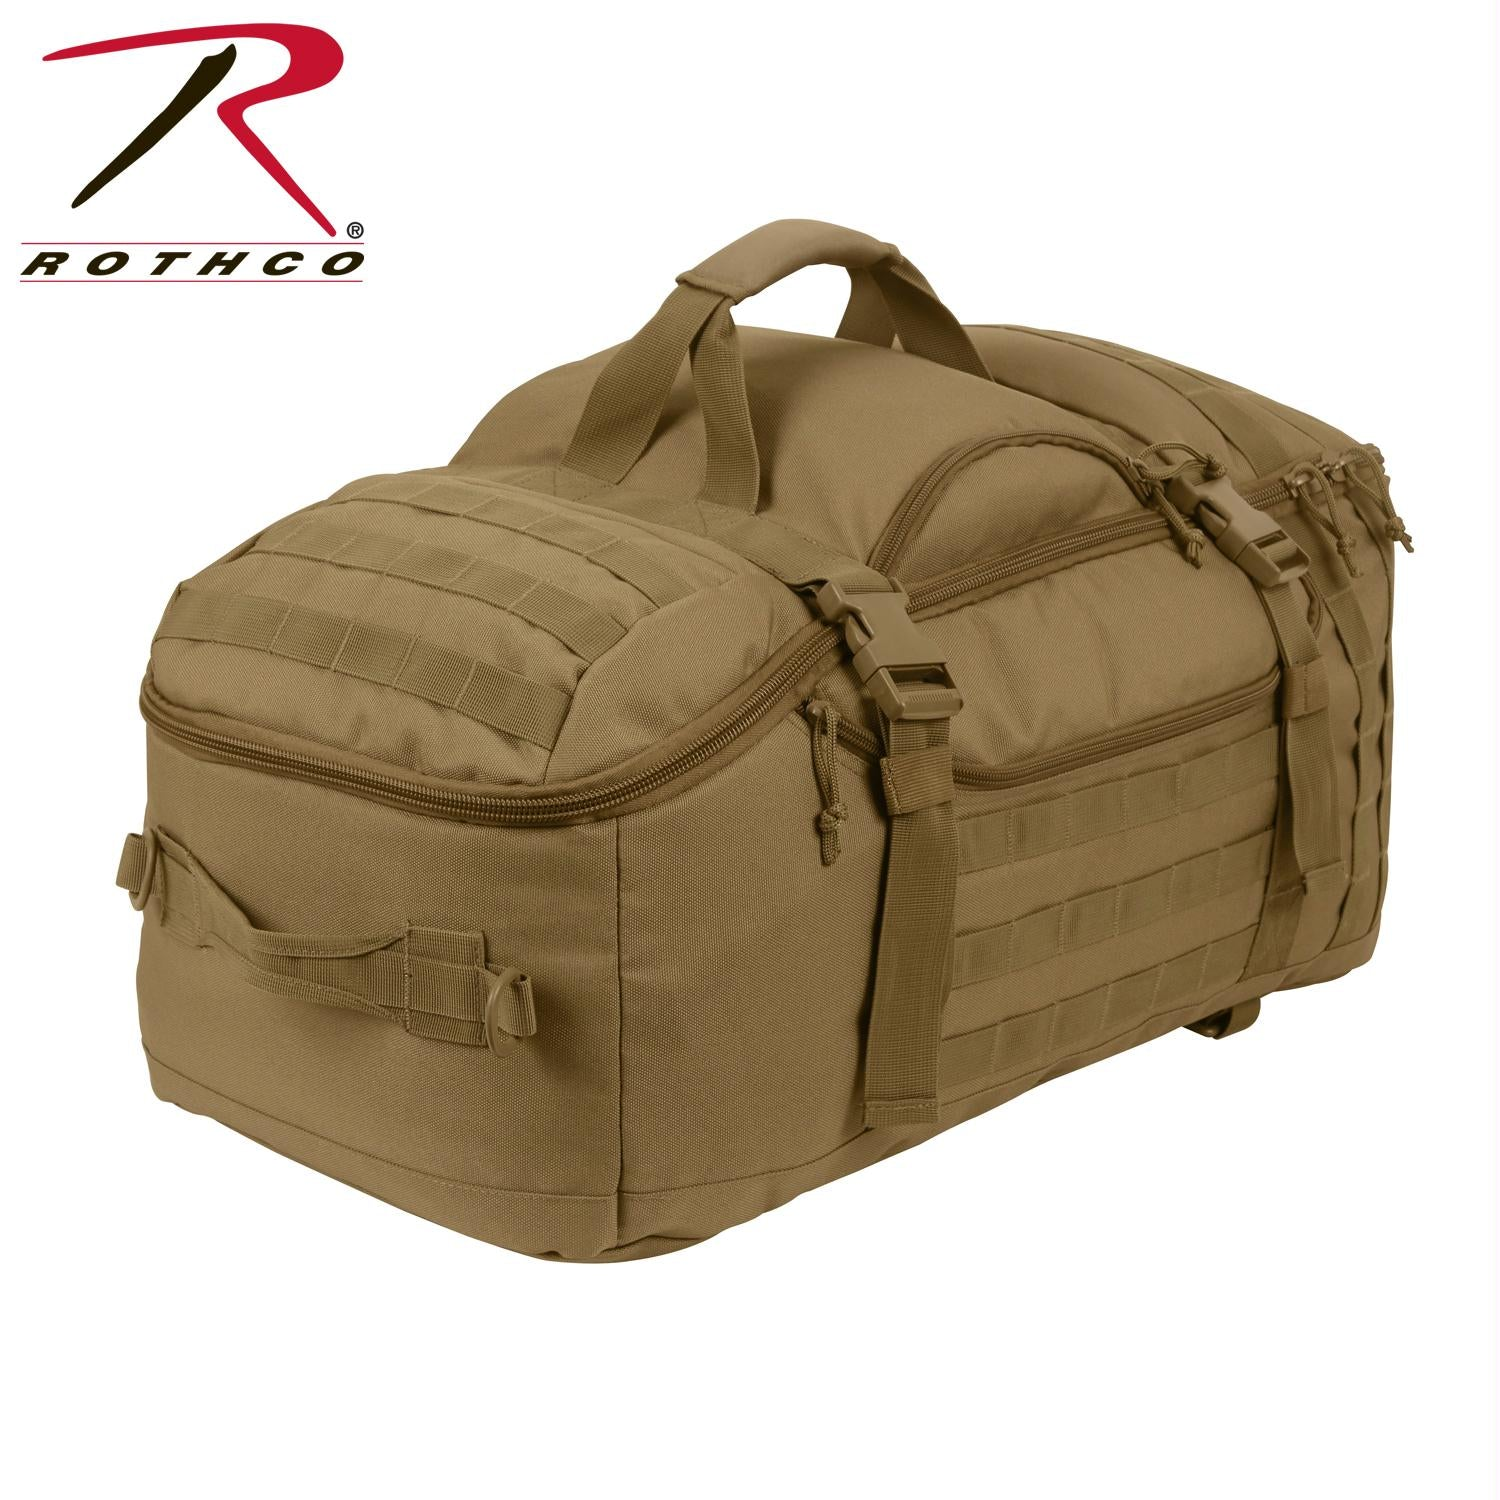 Rothco 3-In-1 Convertible Mission Bag - Coyote Brown